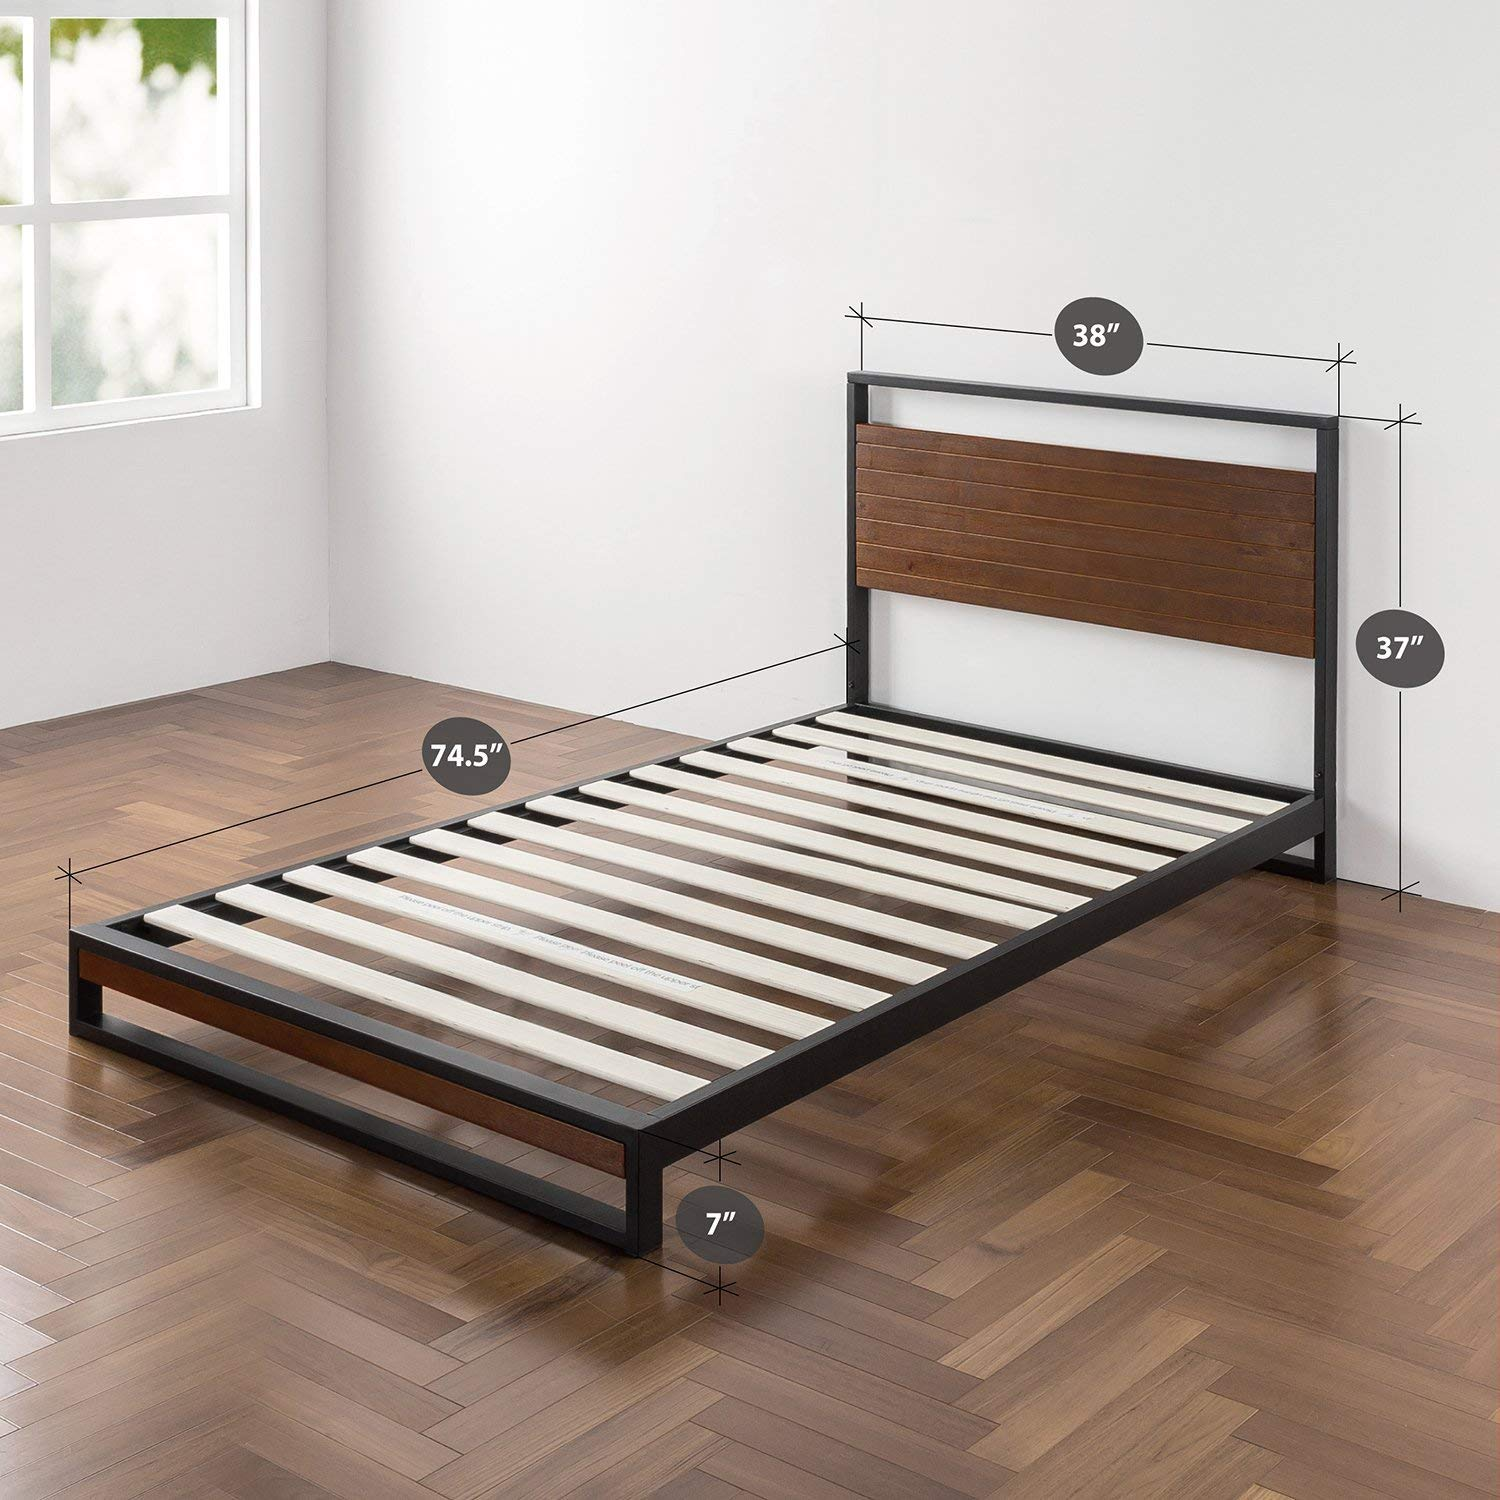 Features of Zinus Metal and Wood Platform Bed